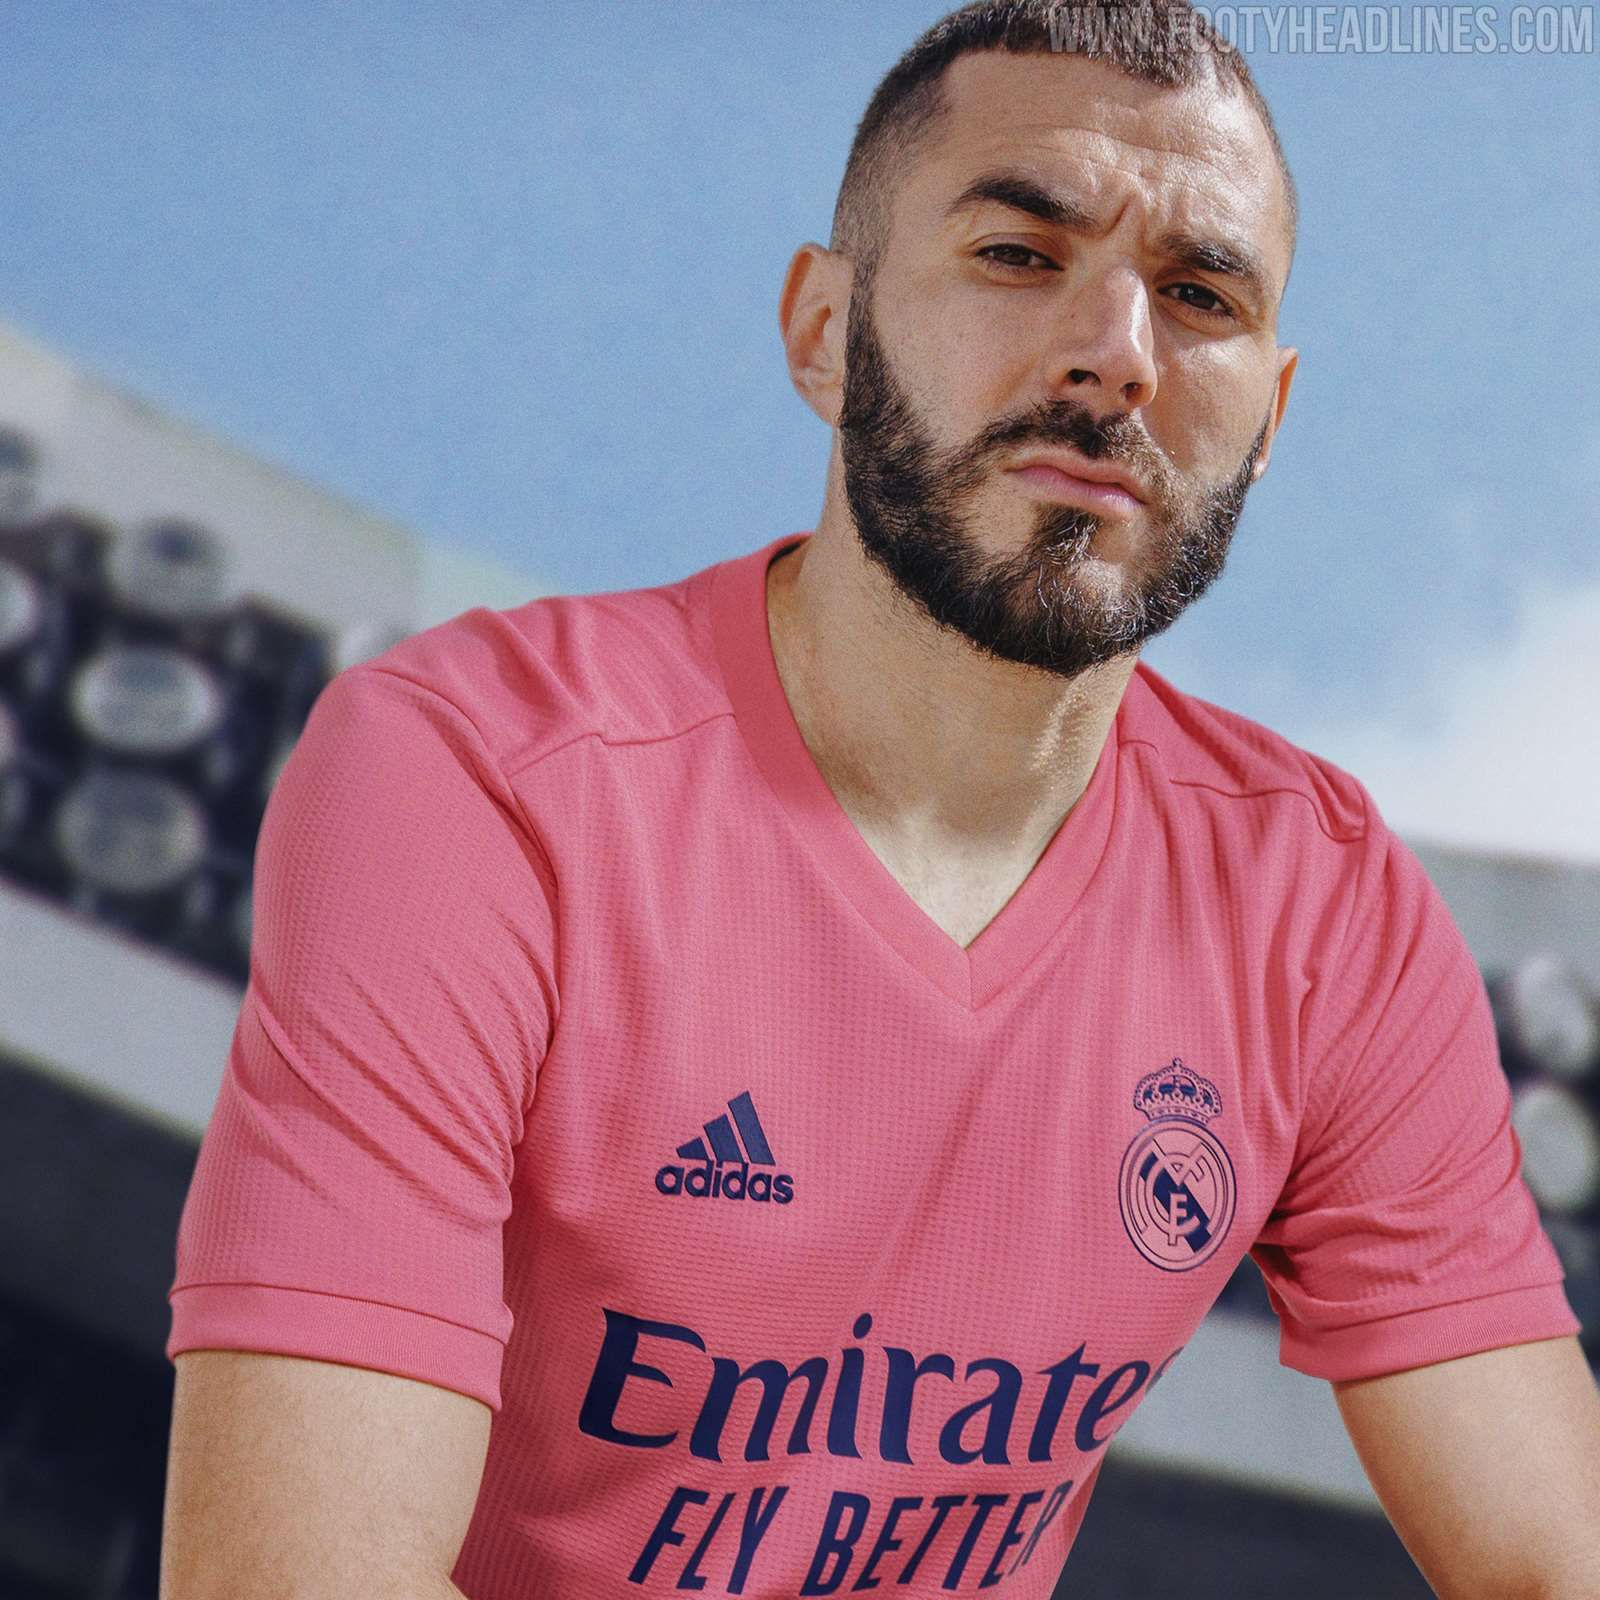 Real Madrid 20 21 Away Kit Released Footy Headlines In 2020 Real Madrid Madrid Football Shirts